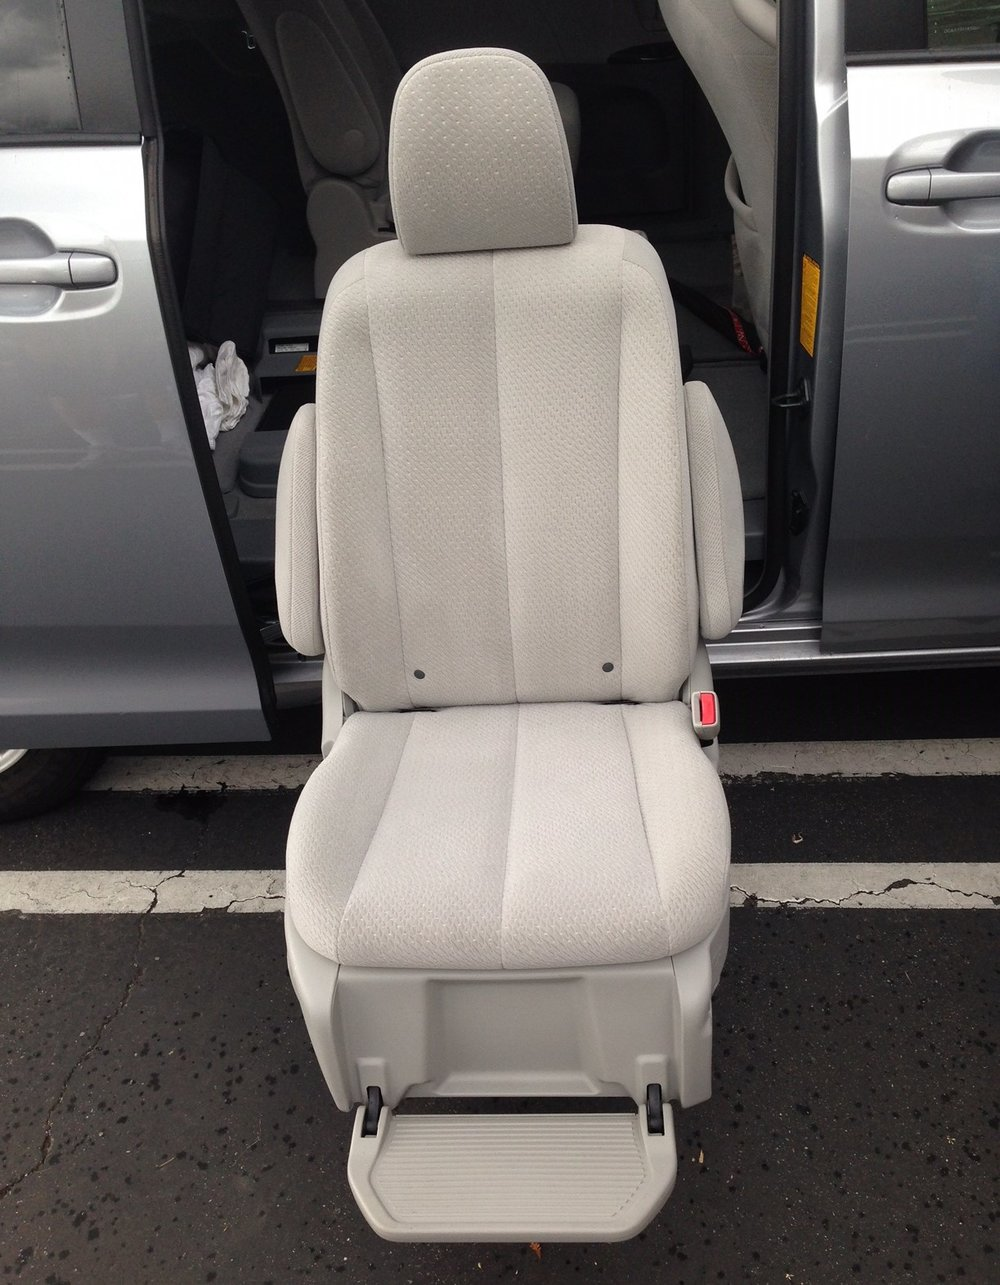 Toyota Access Seat